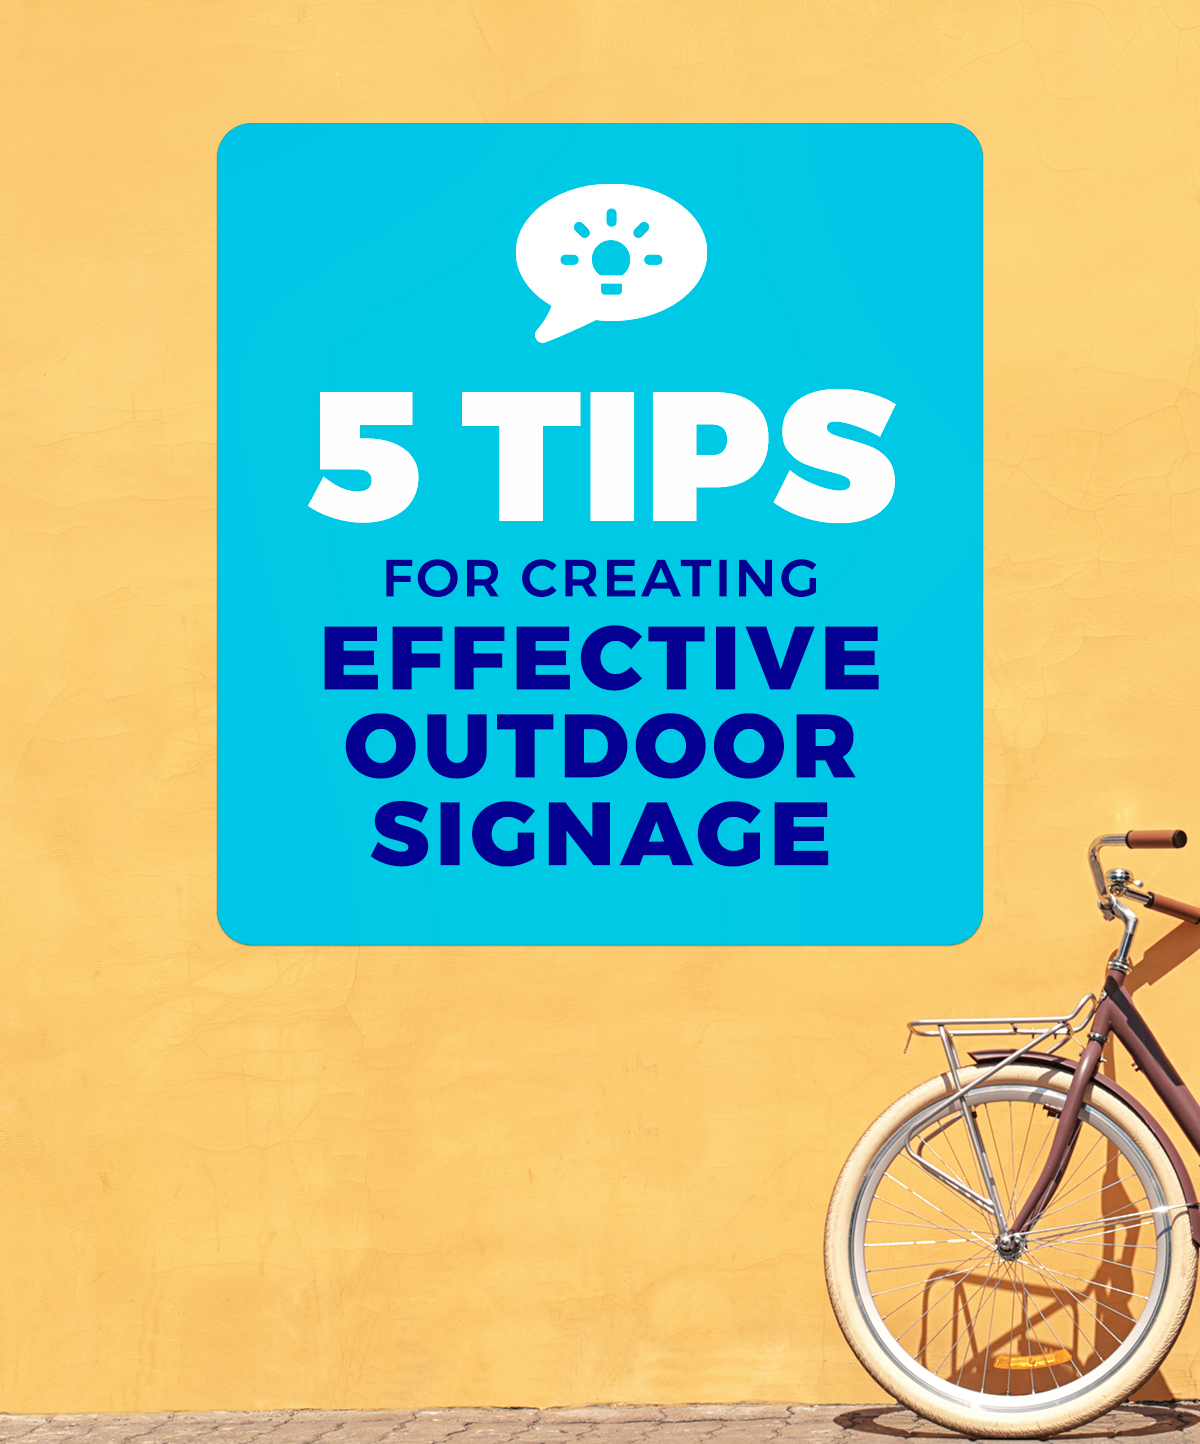 Our top tips for effective signage